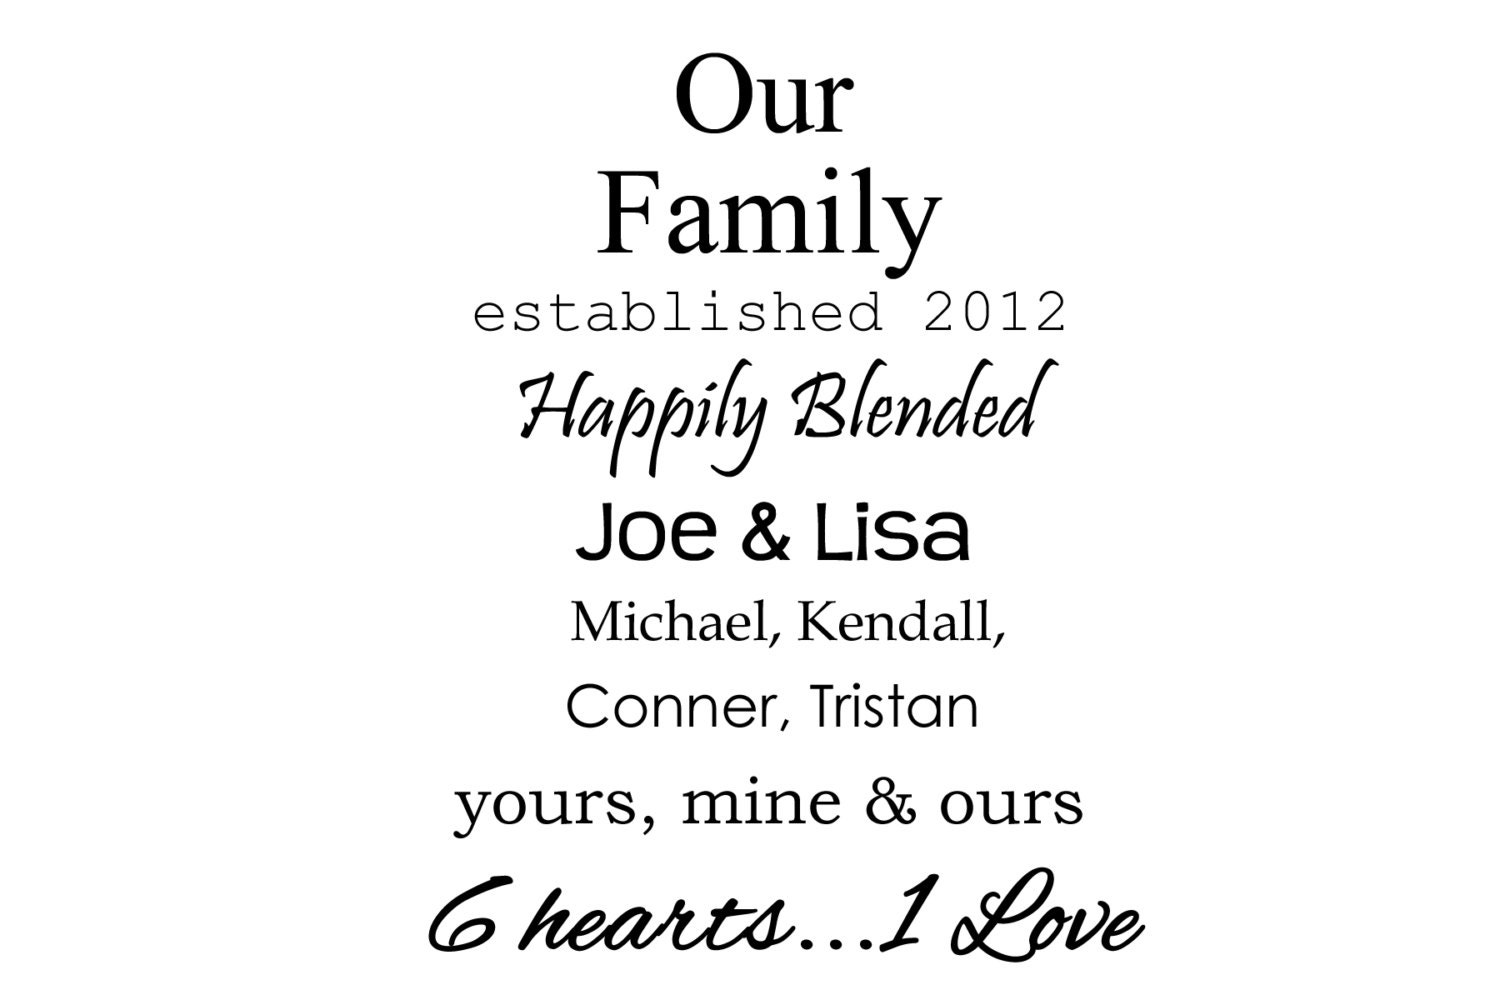 Inspirational Quotes About Blended Families QuotesGram